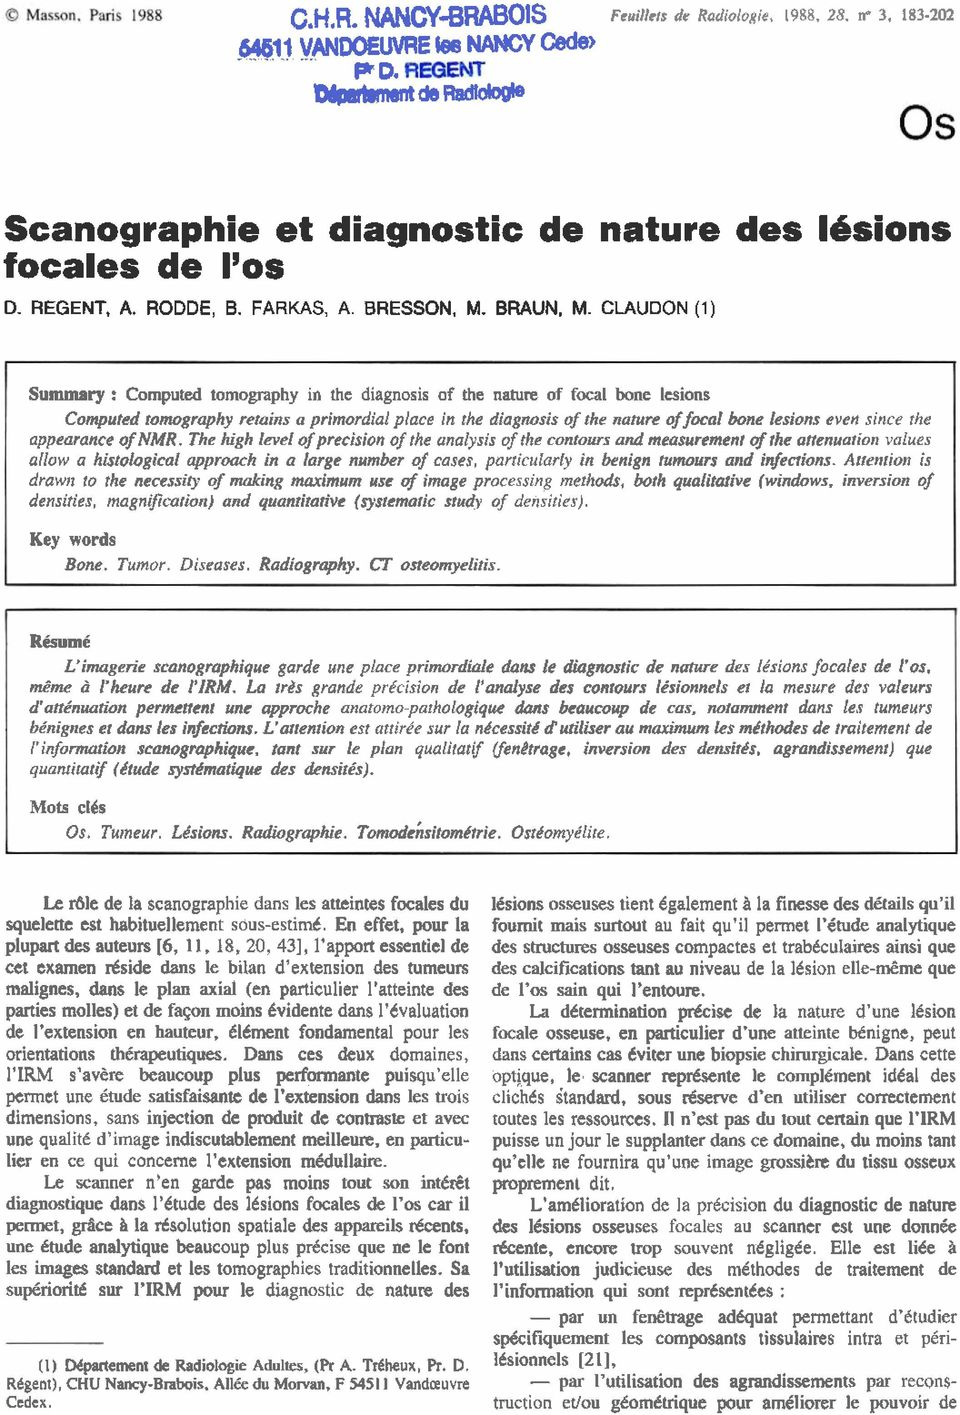 CLAUDON (1) Summary : Computed tomography in the diagnosis of the nature of focal bone lesions Computed romography rerains a primordial place in the diagmsis of the nature of focal bone Iesions evert